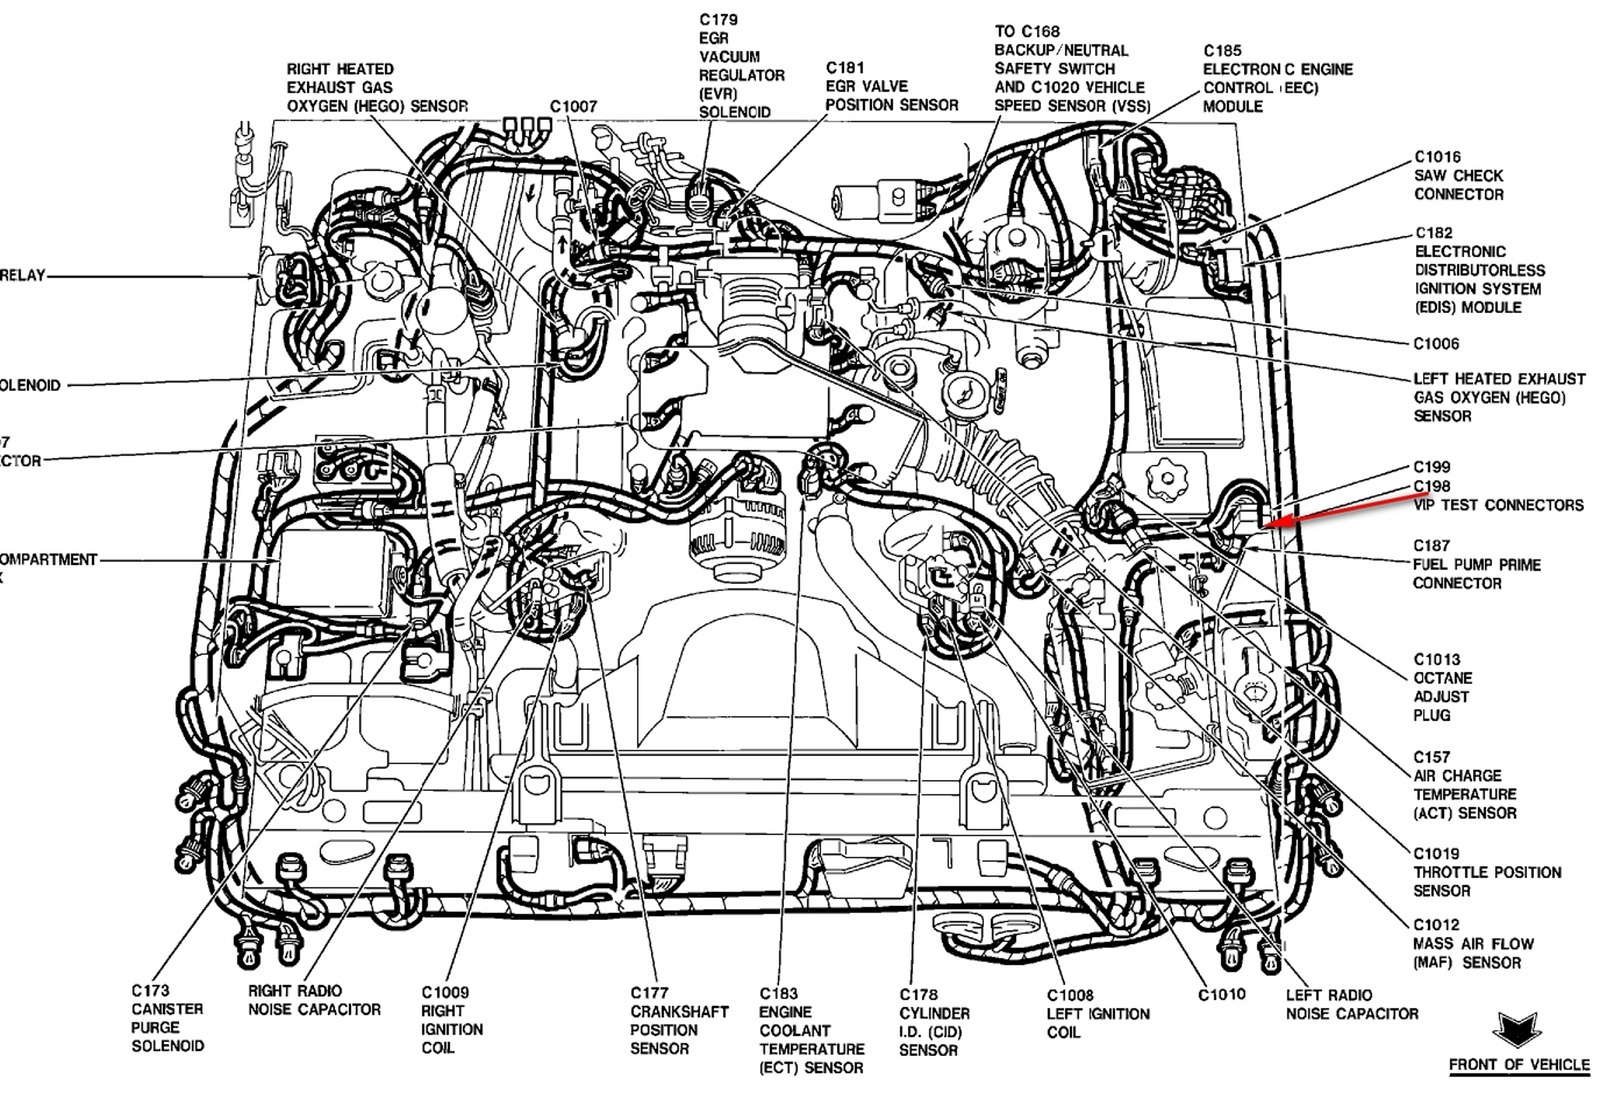 2004 Cts Engine Diagram - Data Wiring Diagrams  Cadillac Cts Fuse Box Location on 2003 cts fuse box location, 03 saab 9-3 fuse box location, 96 dodge neon fuse box location, 03 buick park avenue fuse box location,